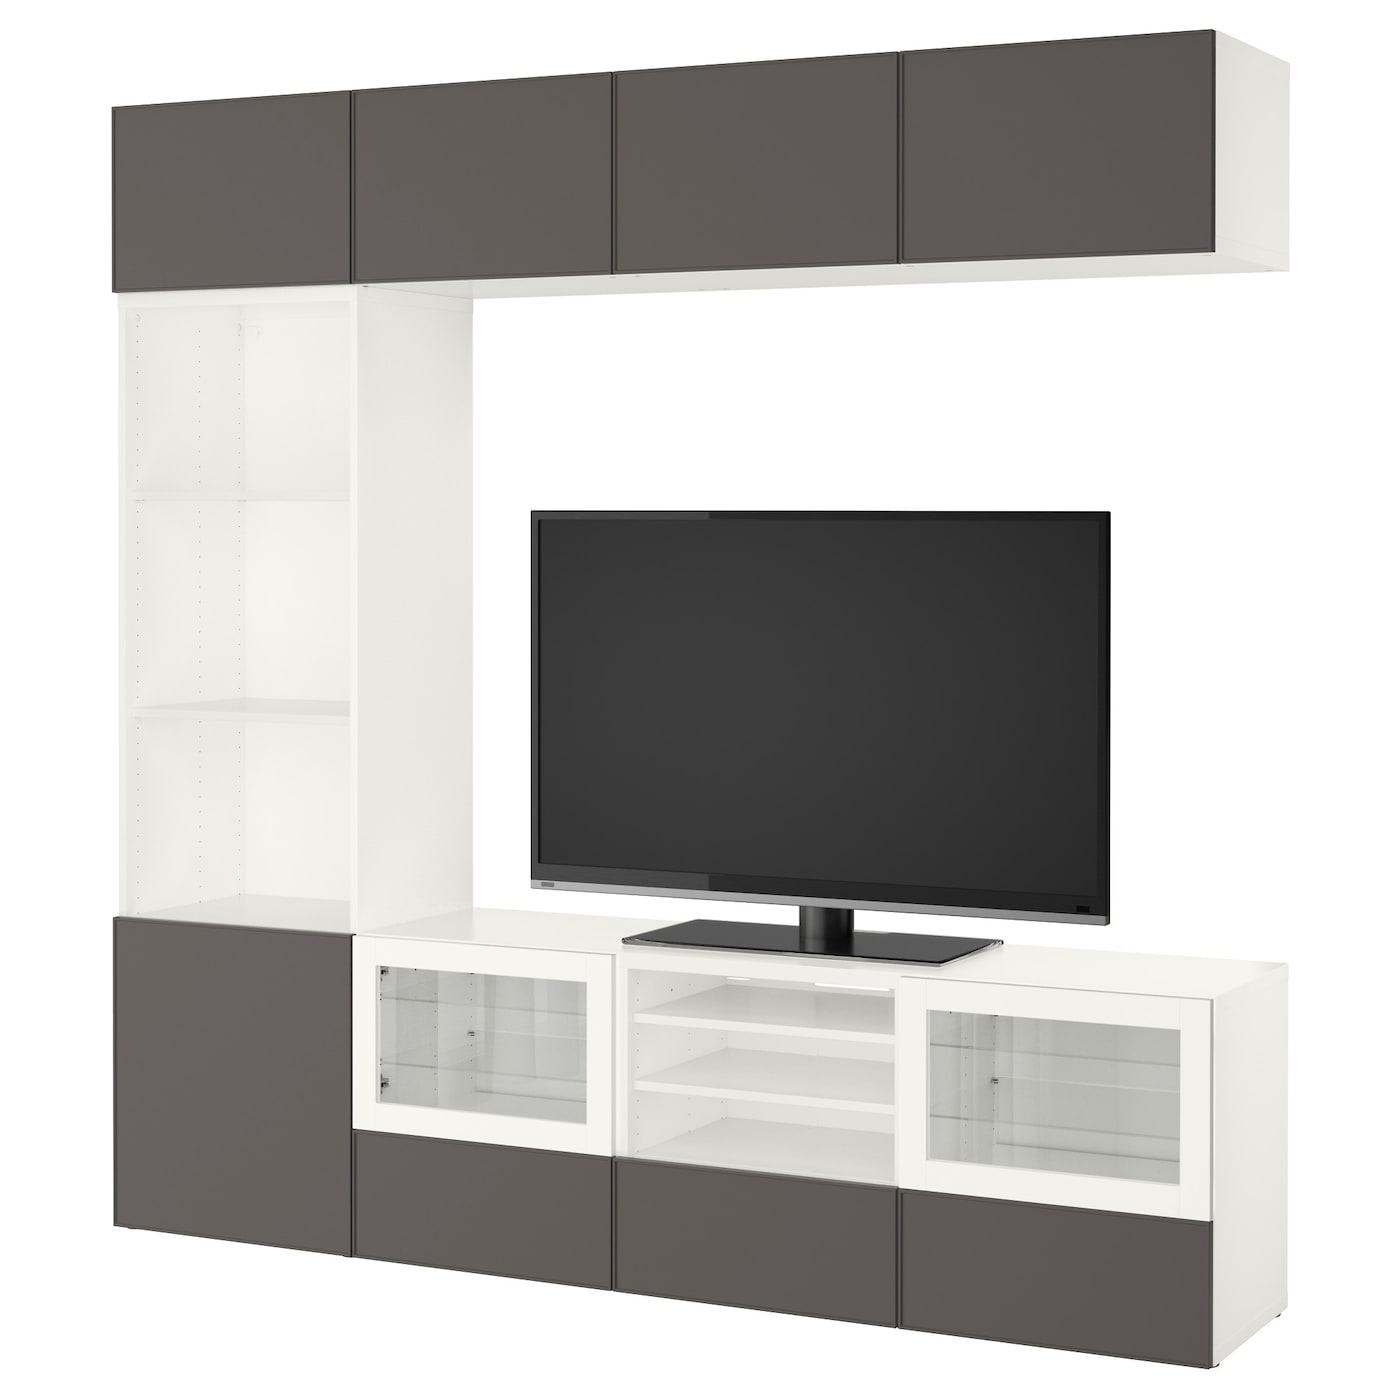 best tv storage combination glass doors white grundsviken dark grey clear glass 240x40x230 cm. Black Bedroom Furniture Sets. Home Design Ideas